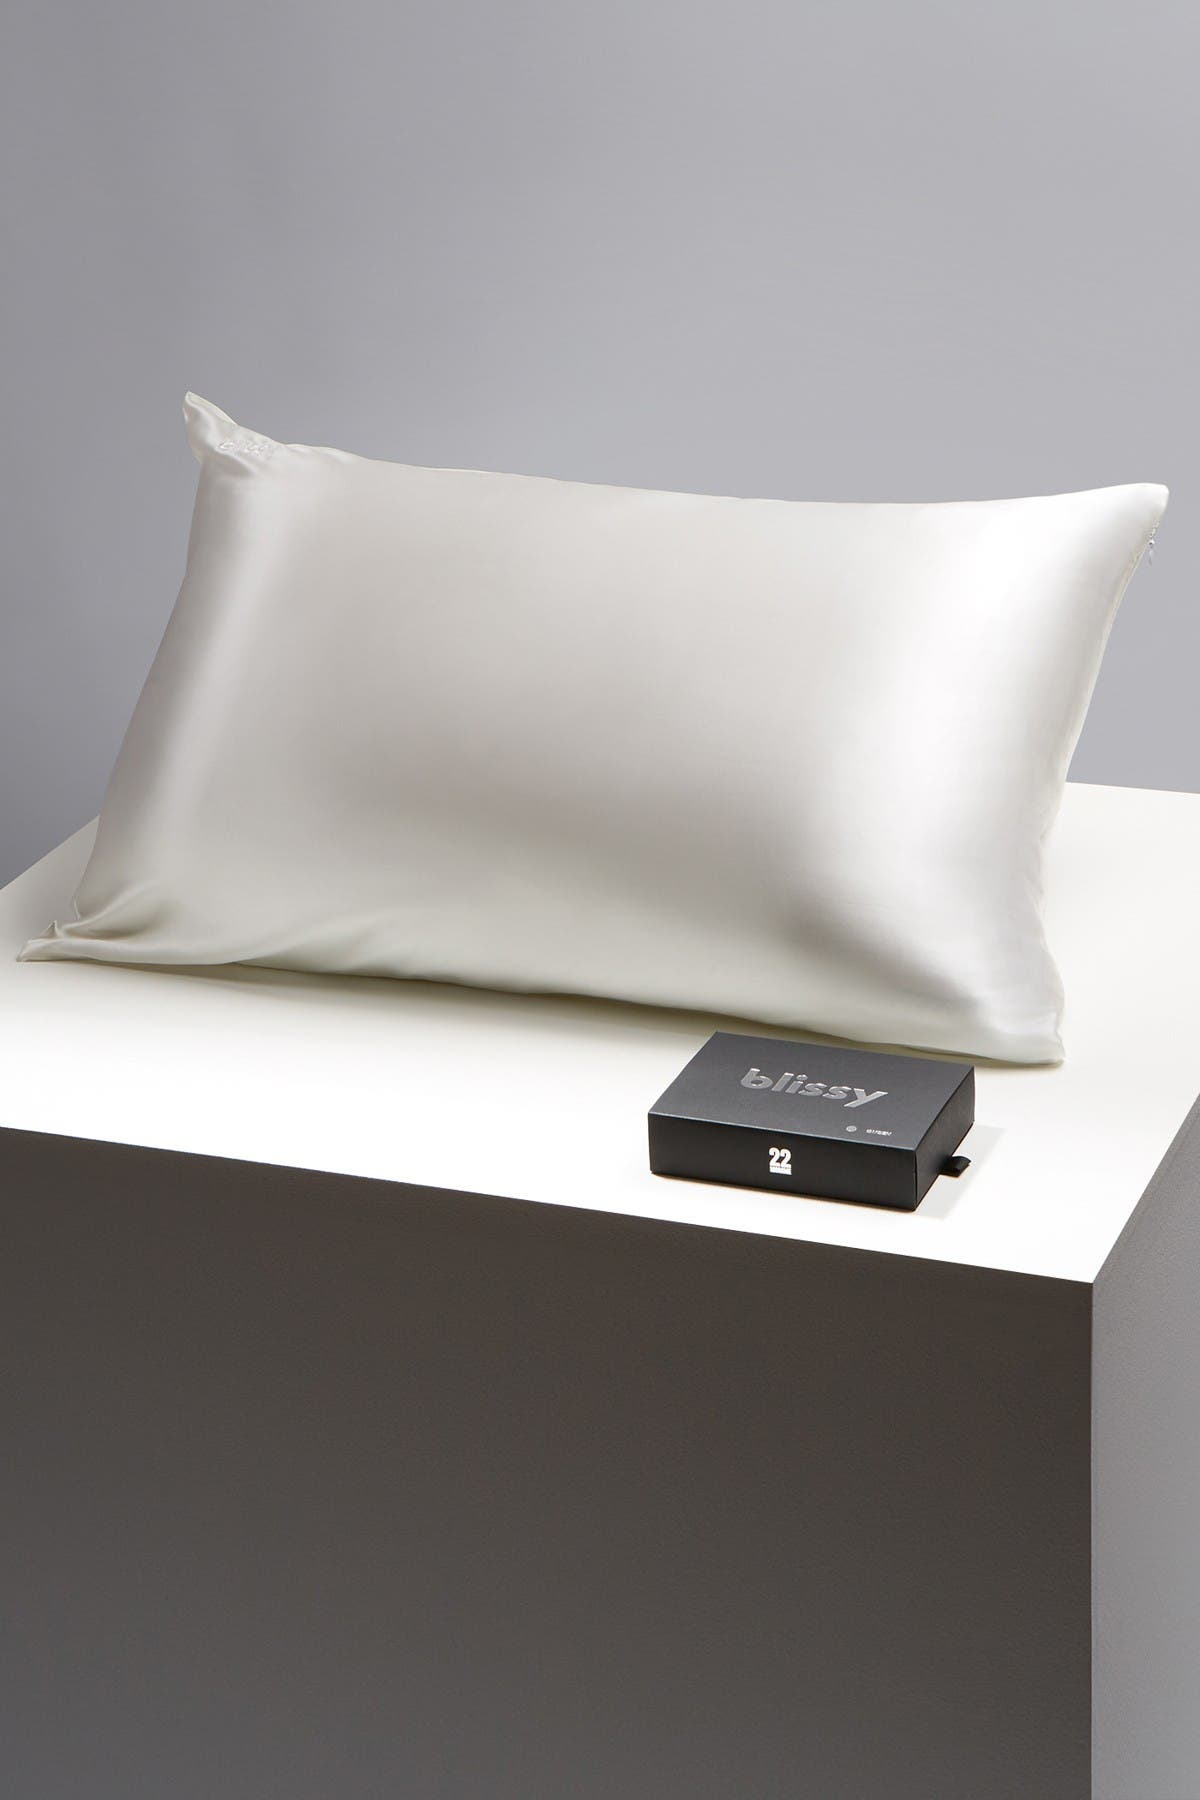 Image of BLISSY Mulberry Silk Queen Pillowcase